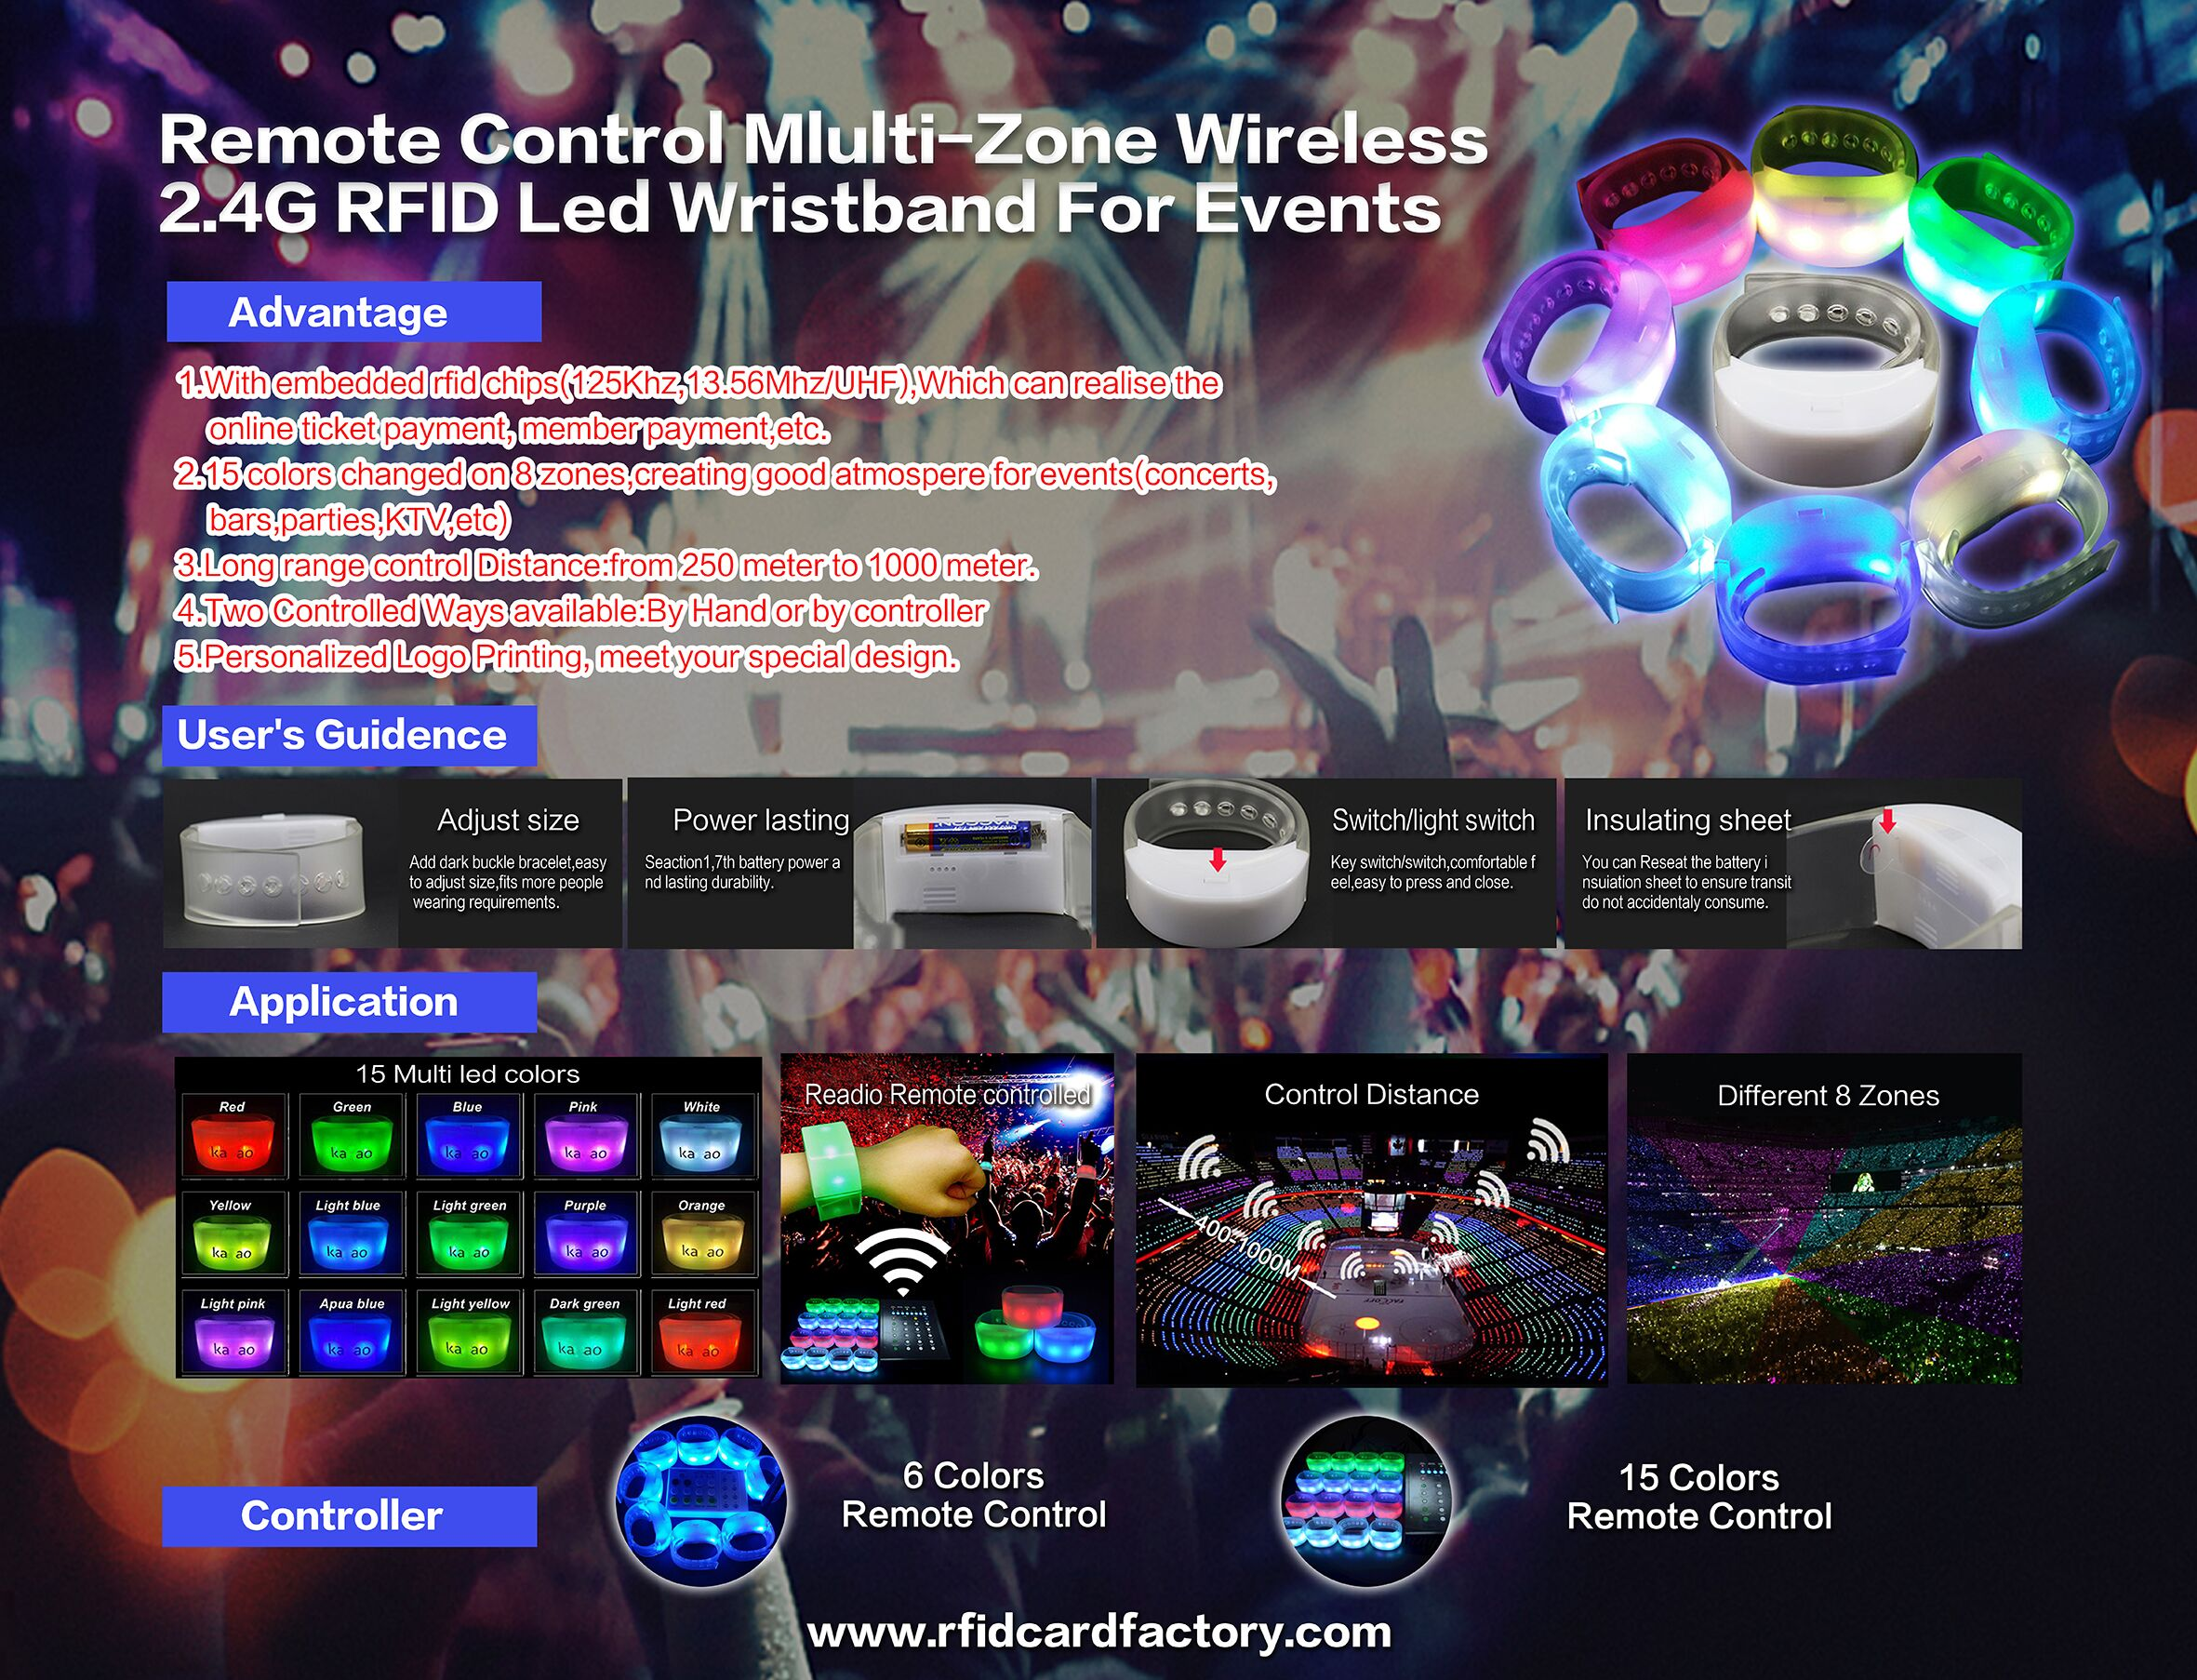 remote control rfid led wristband